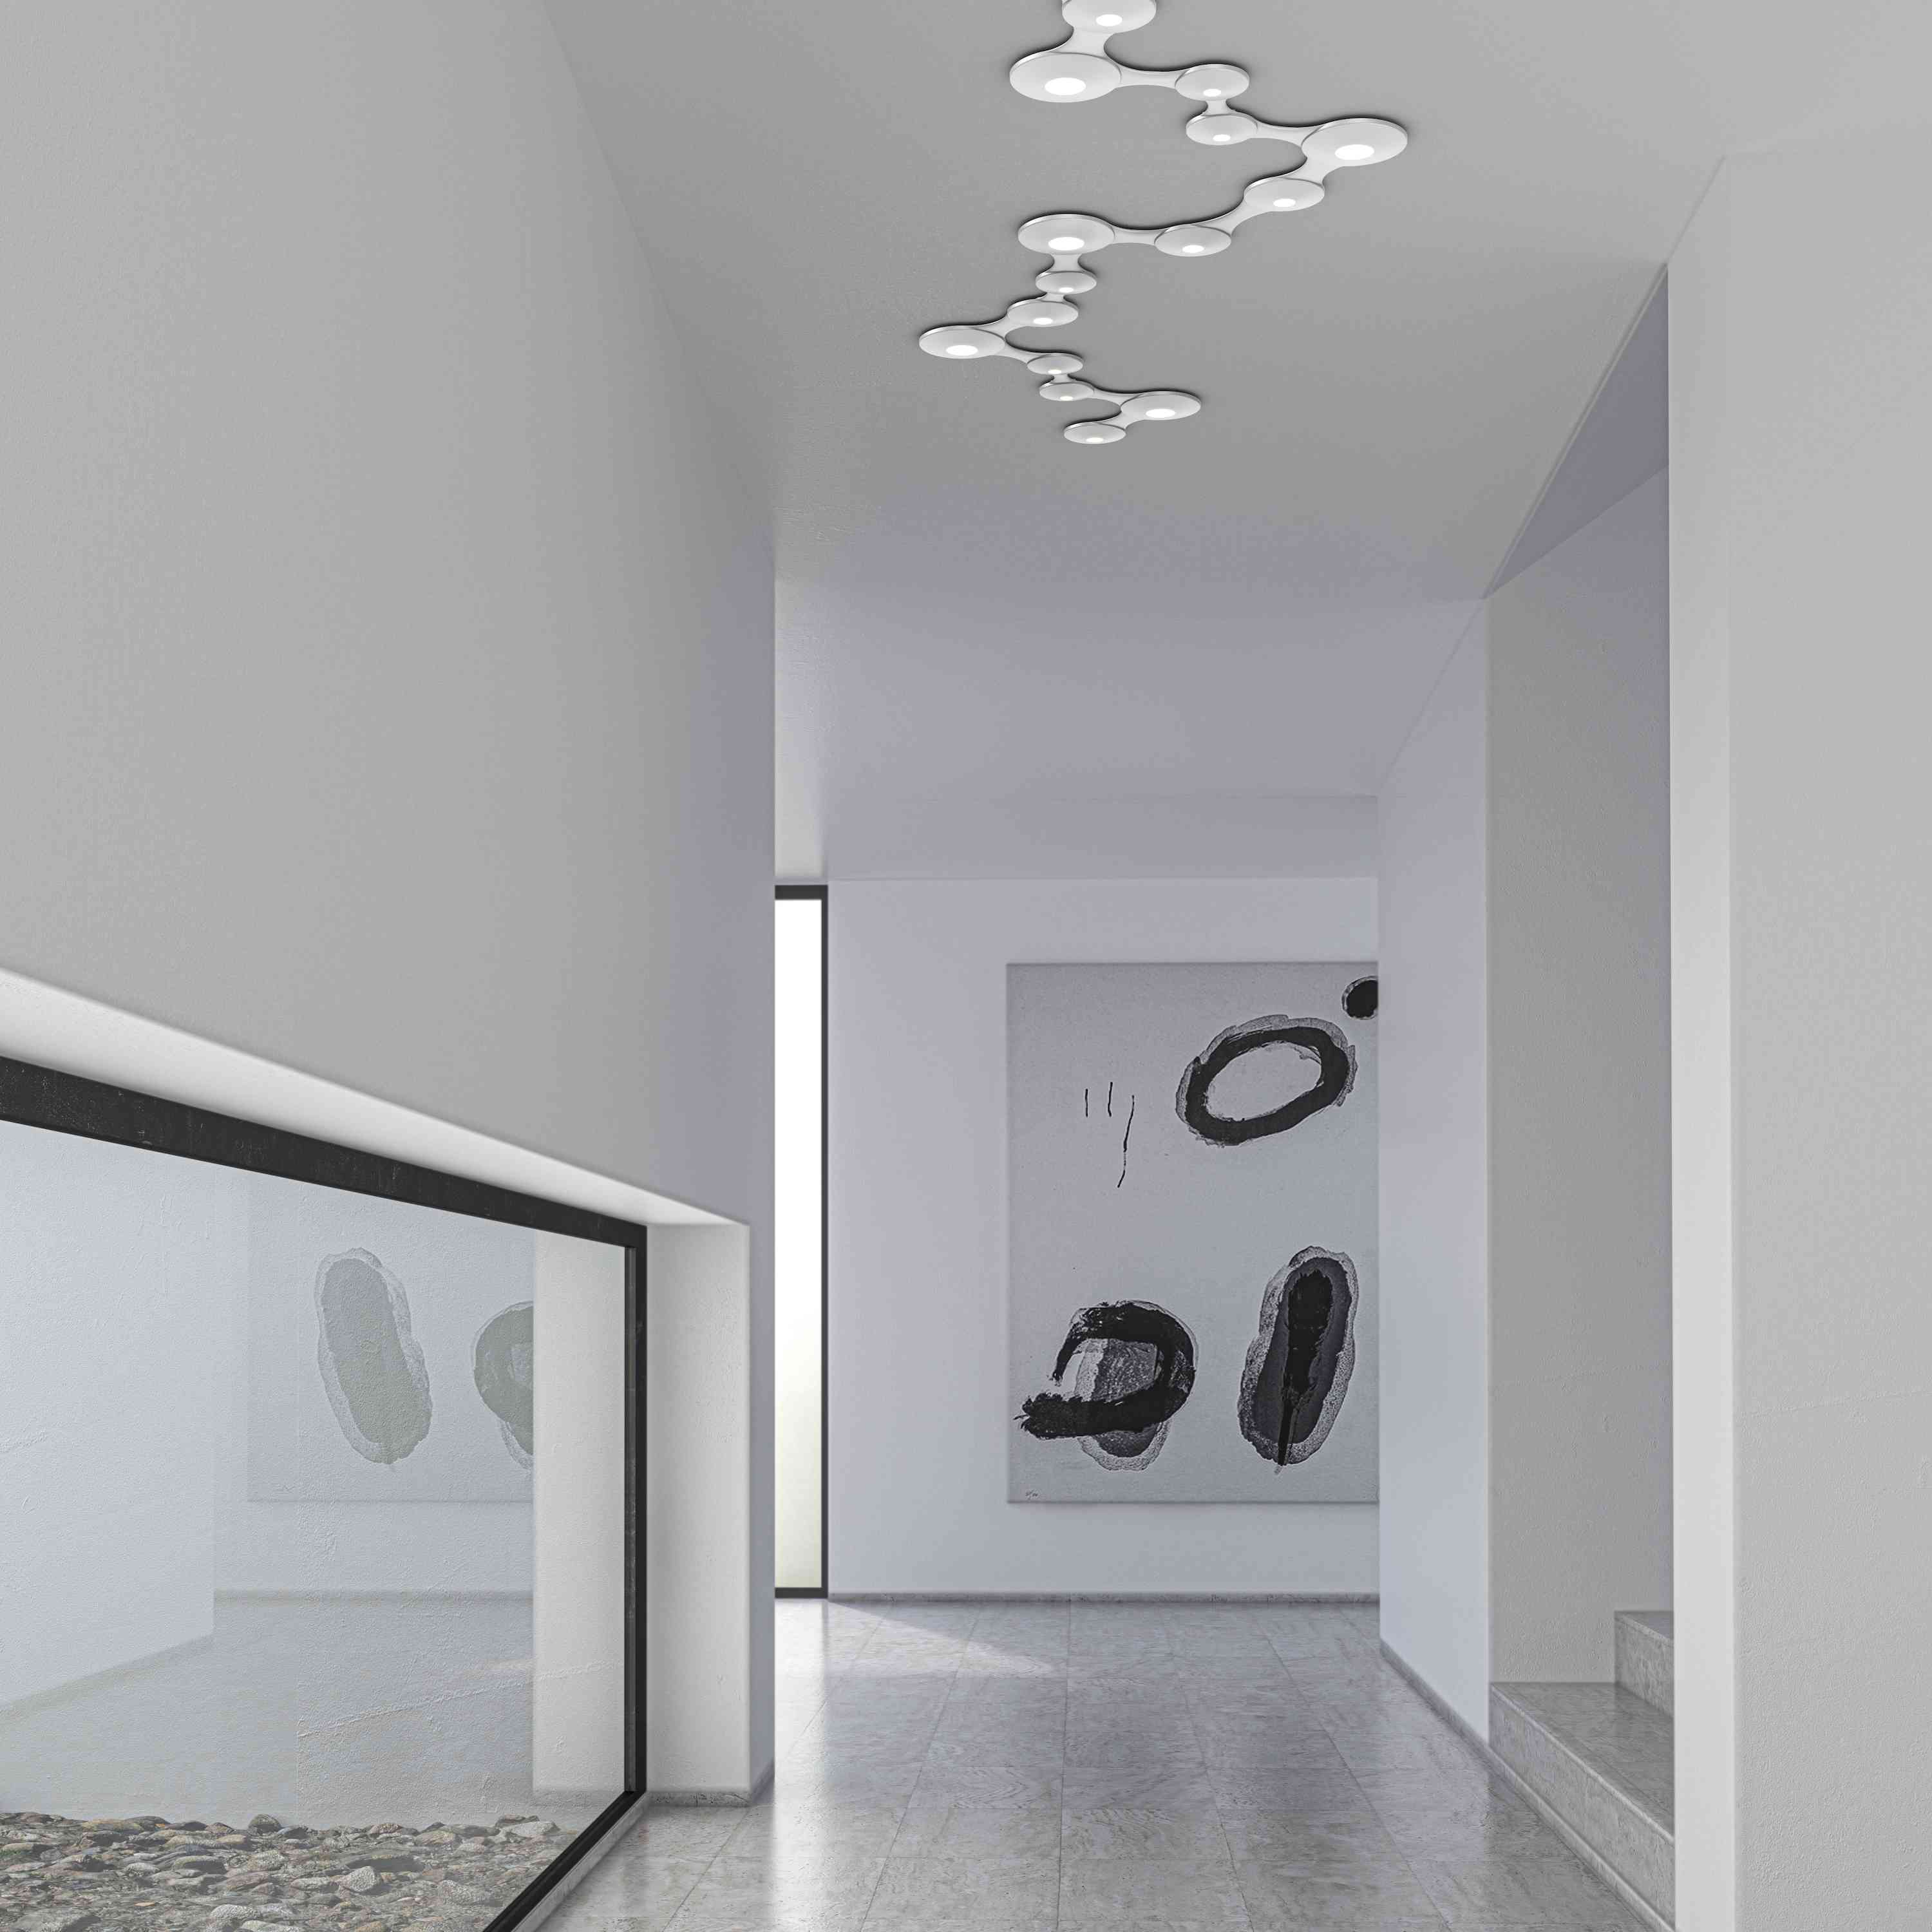 White room with intricate ceiling lighting.